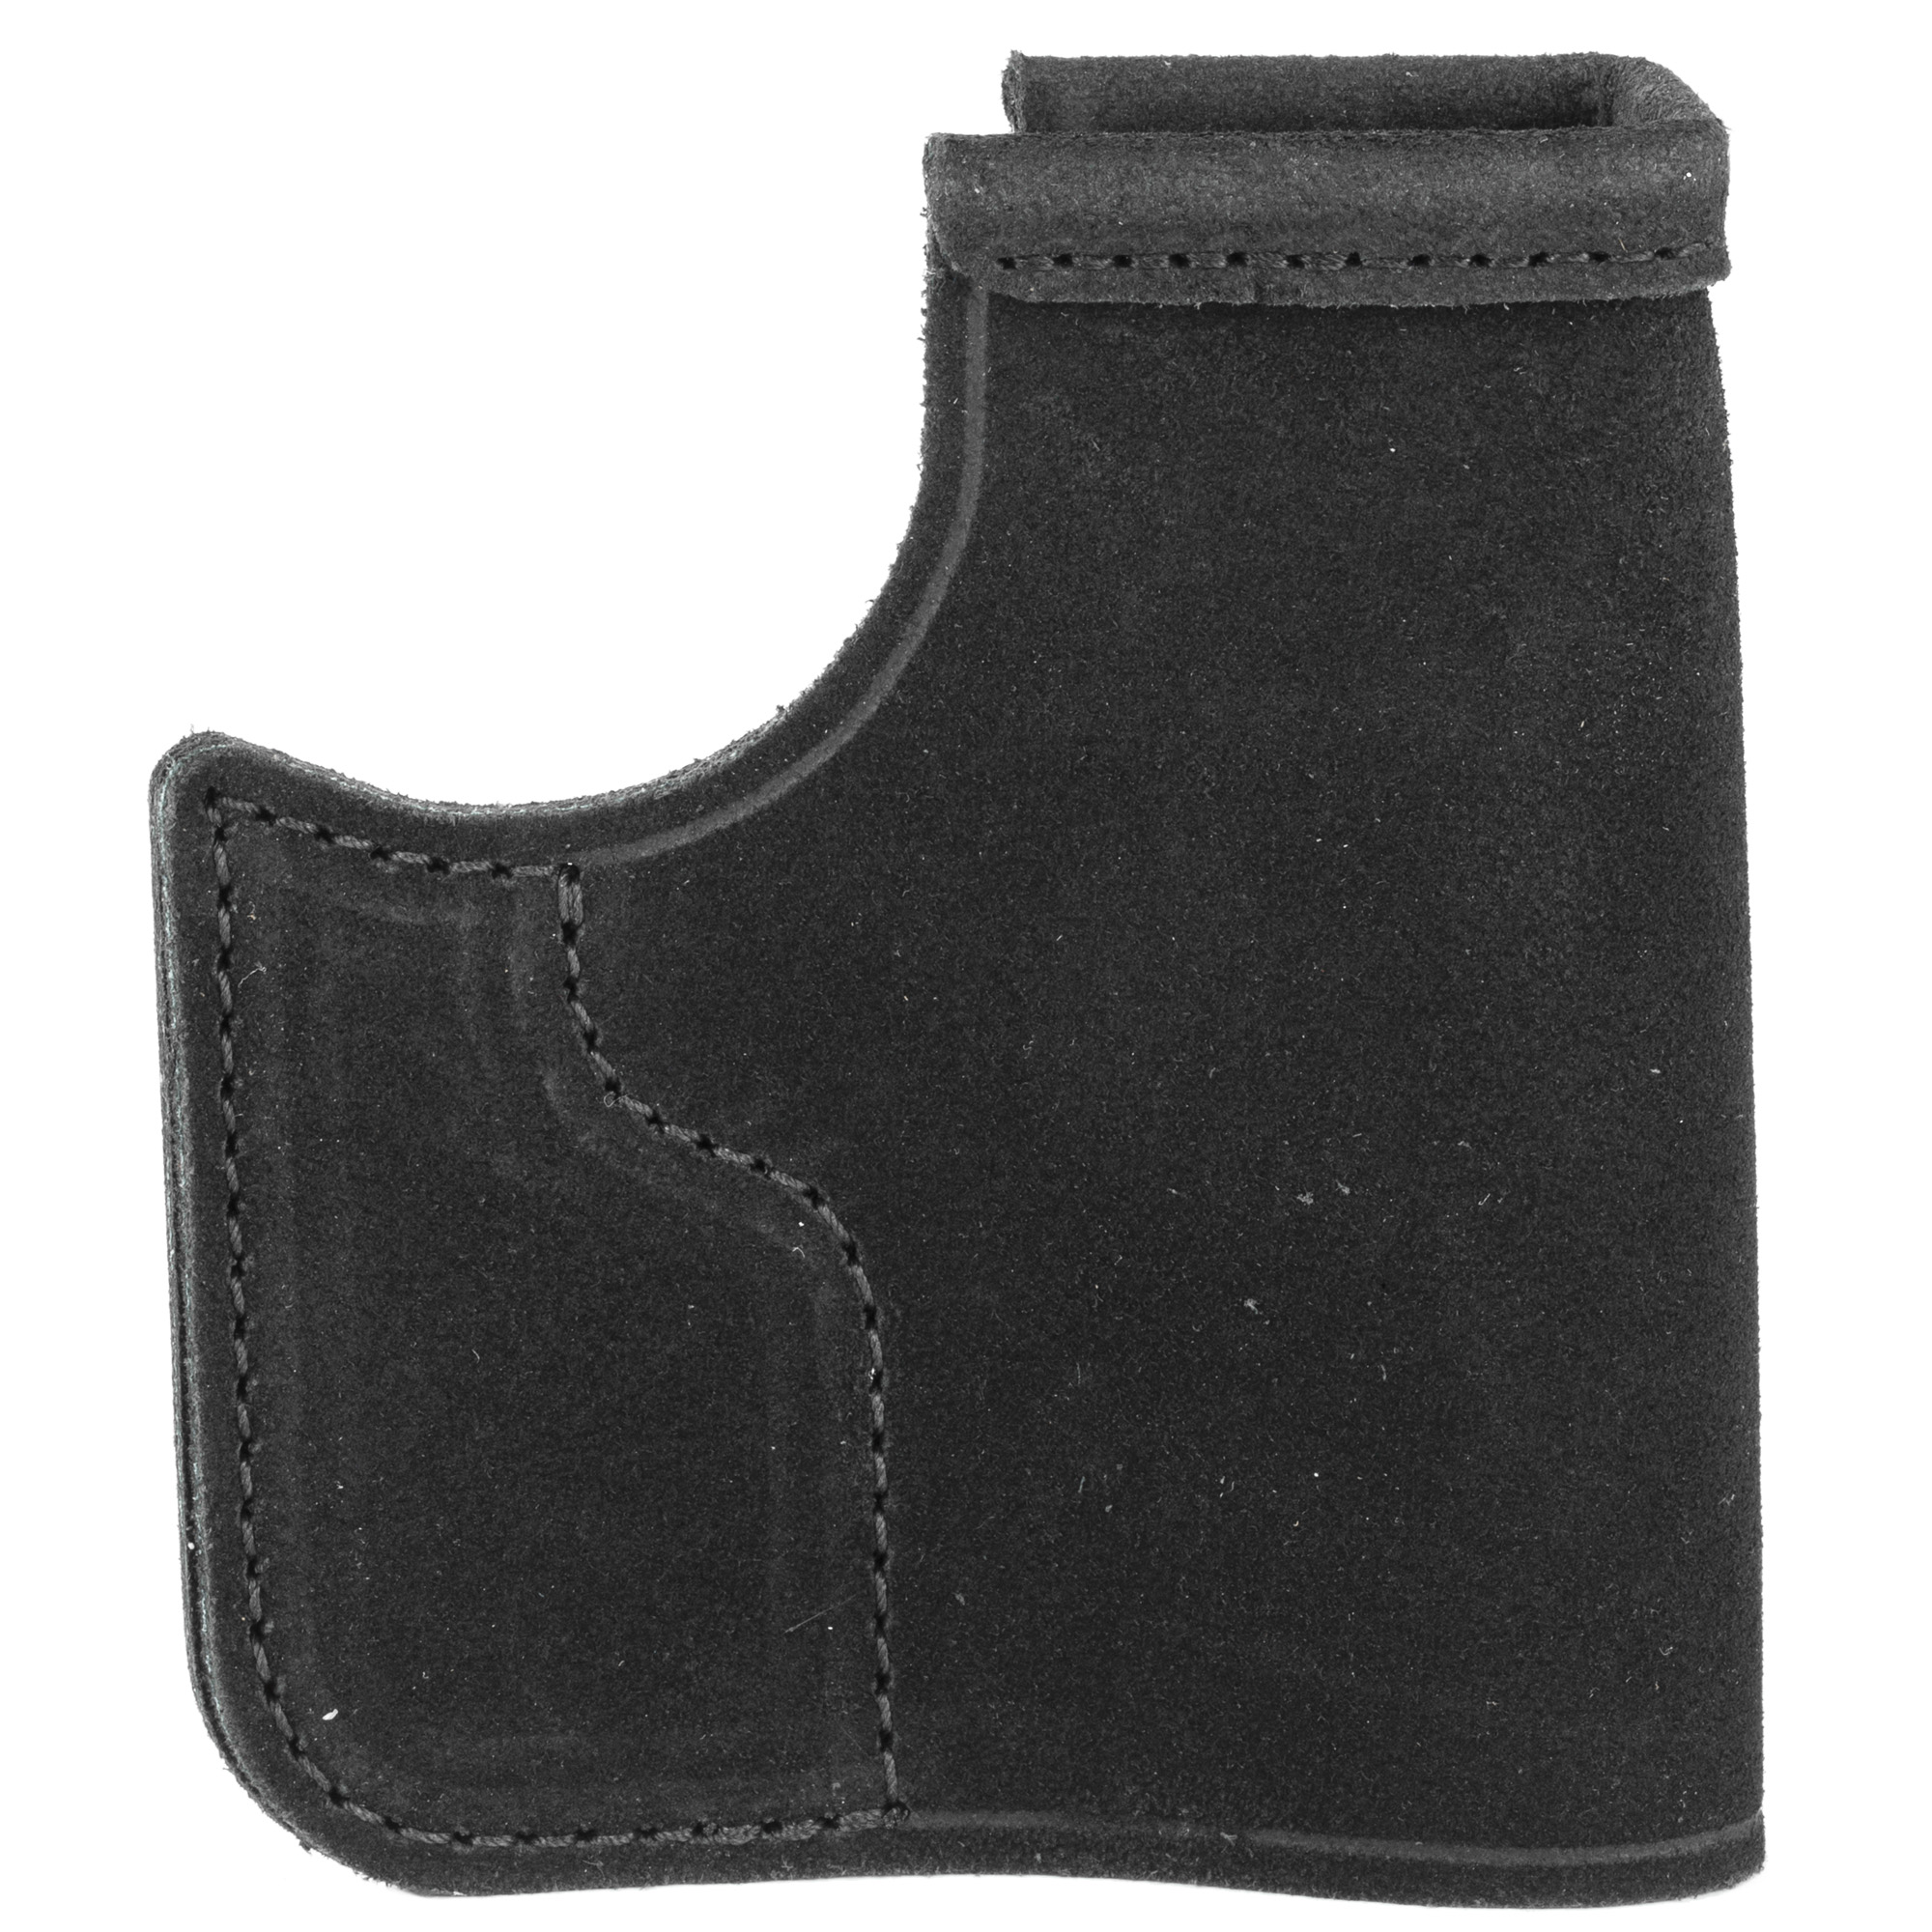 "The Pocket Protector(TM) holster is designed for front pocket carry in pants or a jacket. The Pocket Protector keeps the firearm in the same general position so you can quickly locate the grip when you need to draw"" conceals the shape of the gun so that its outline is not printed through the pants"" and allows one-handed release of gun from both pocket and holster. Reinforcements at the holster mouth and beneath the trigger guard keep the holster stiff enough to allow a smooth draw and easy return to the holster"" while also maintaining enough rigidity to prevent ""printing"" and shifting of the handgun. The holster's hooked shape - at the base of the handgun's trigger guard - is designed to catch on the pocket so that"" with practice (using an unloaded firearm) and while using the proper pants"" you can draw the firearm while the holster remains in your pocket or falls away. The Pocket Protector is ambidextrous and constructed of premium Center Cut Steerhide(TM)."